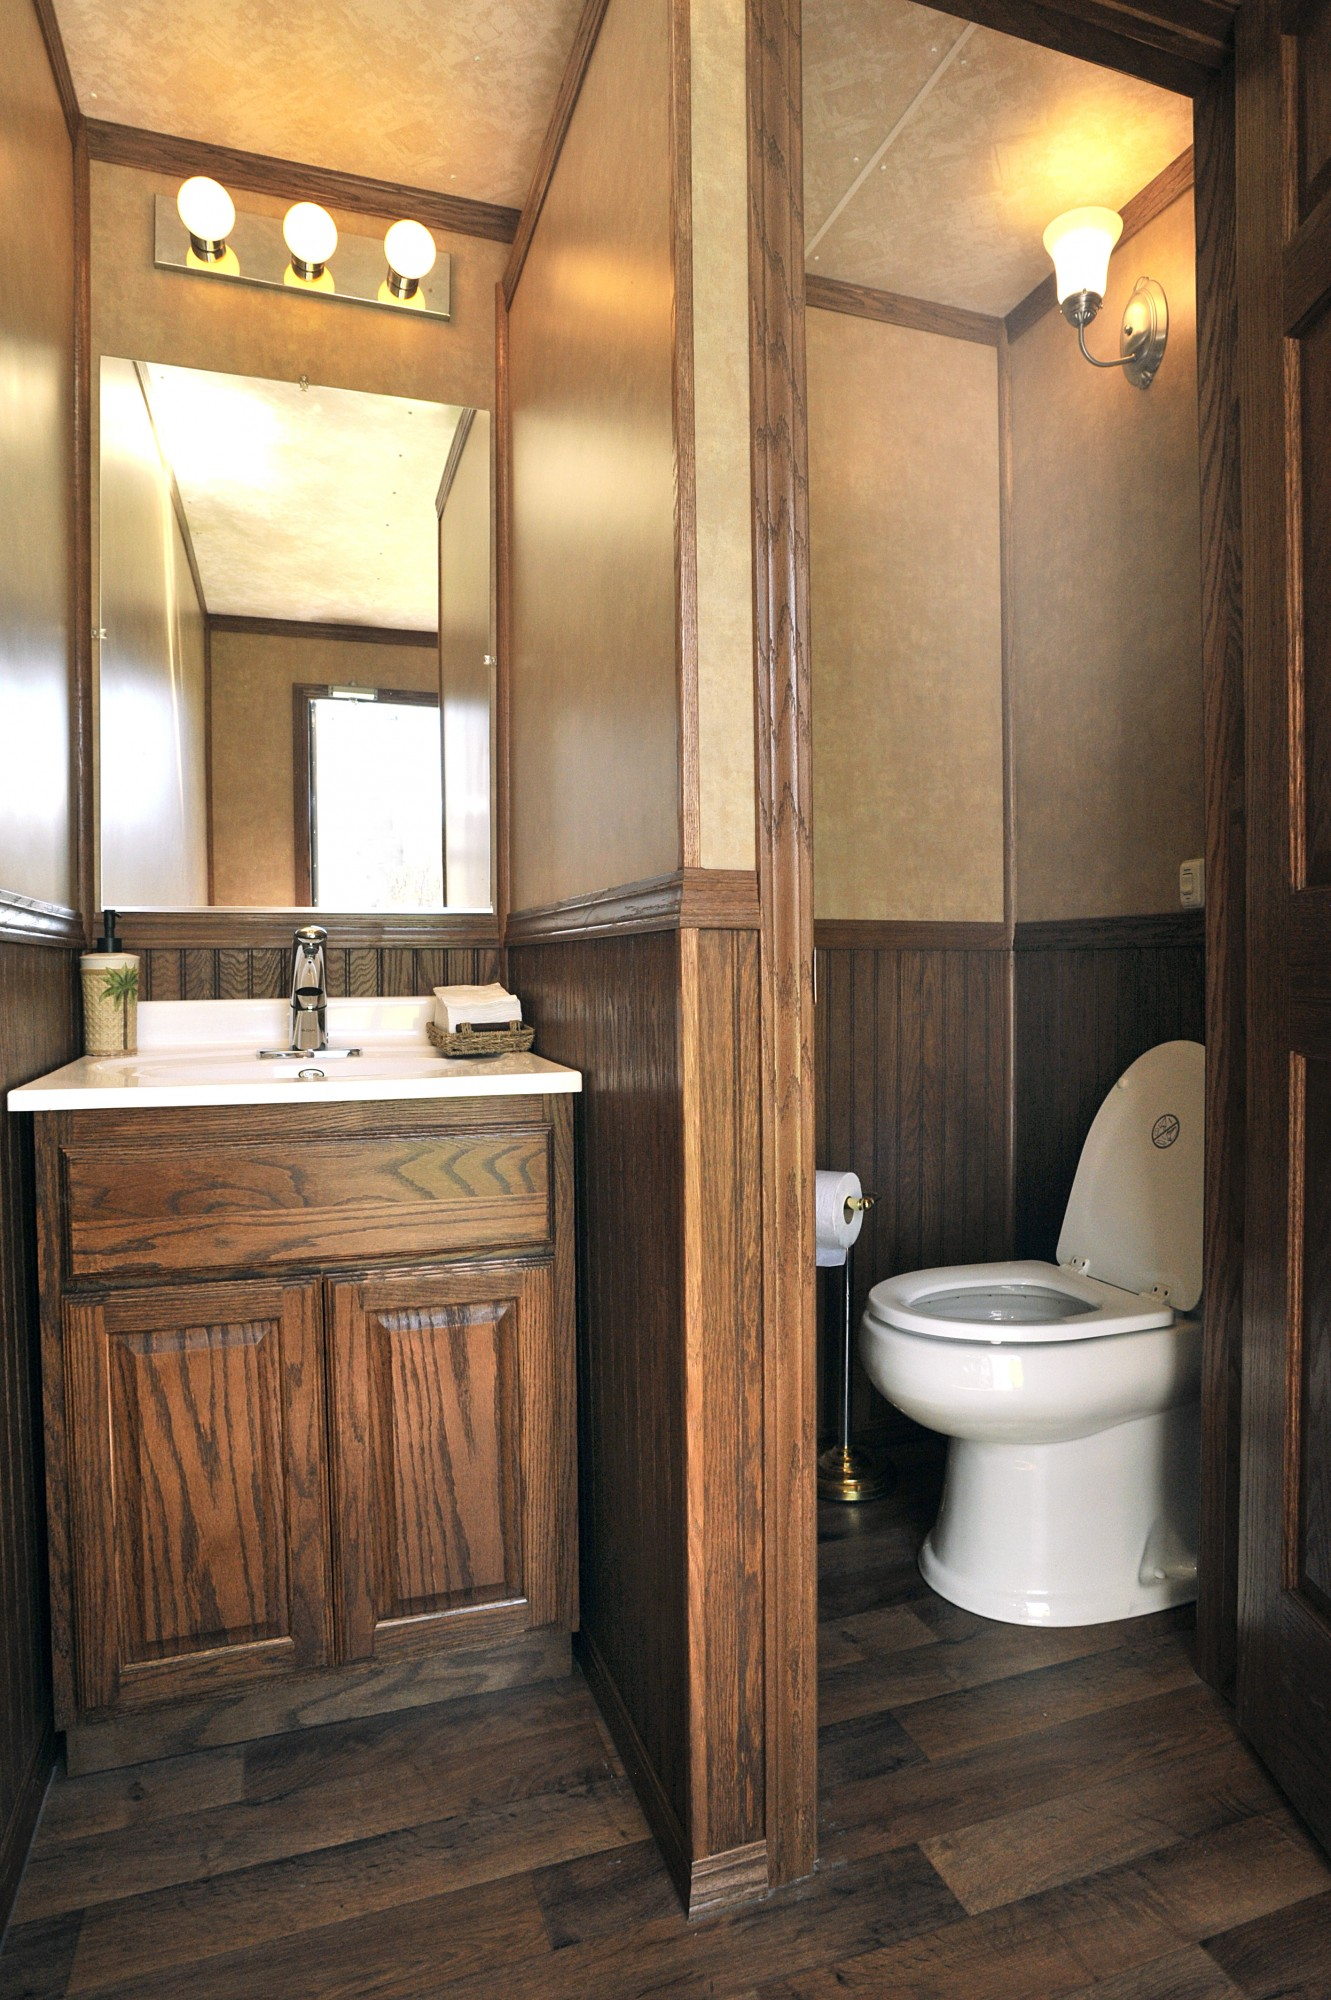 marvelous rent trailers portable guide the ideas diy brides toilet decoration new unique trailer popular wedding bathroom johnny luxury for